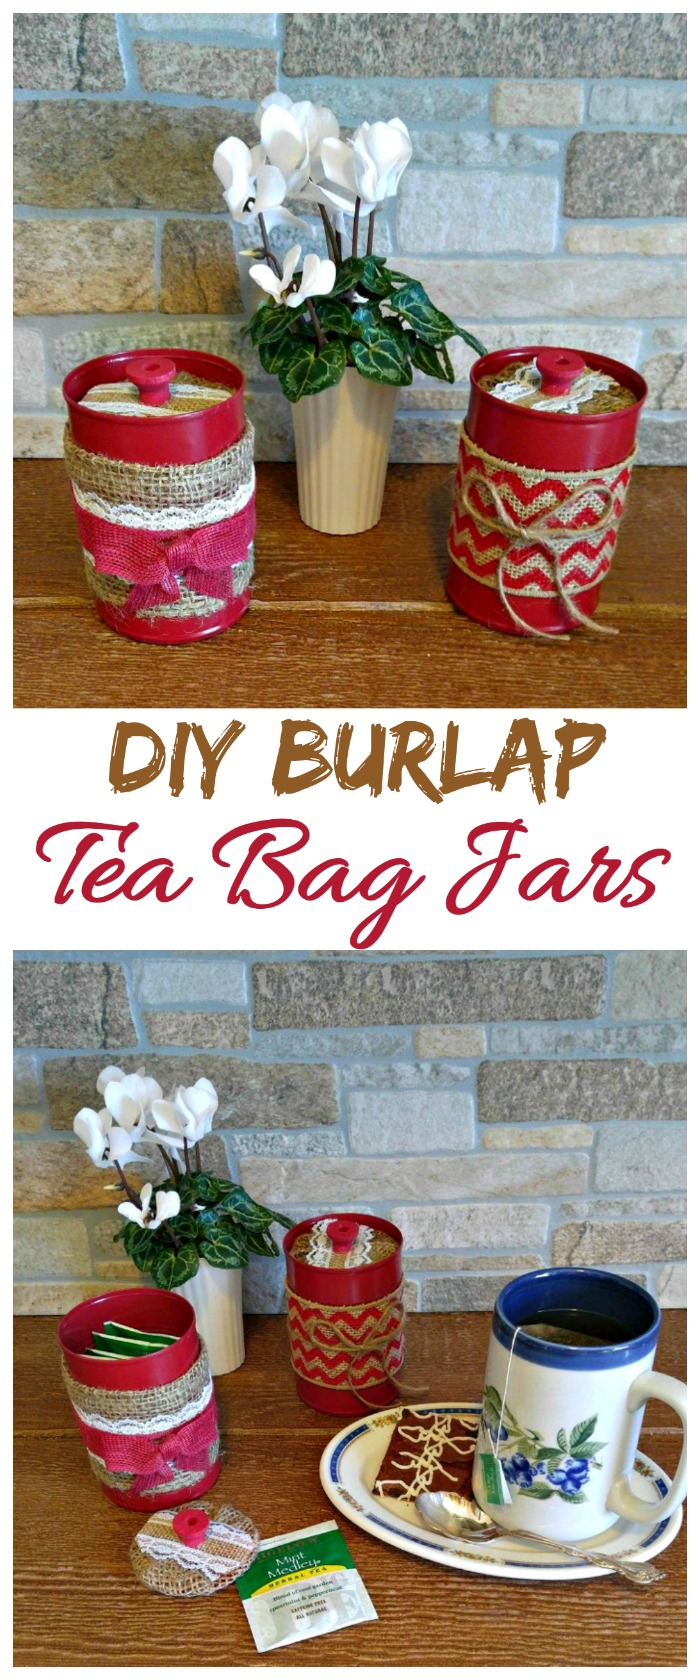 These DIY Burlap Tea Bag Jars are a lovely way to hold your tea bags. The project is very easy to make and looks great in a country farm setting. #TeaProudly #ad